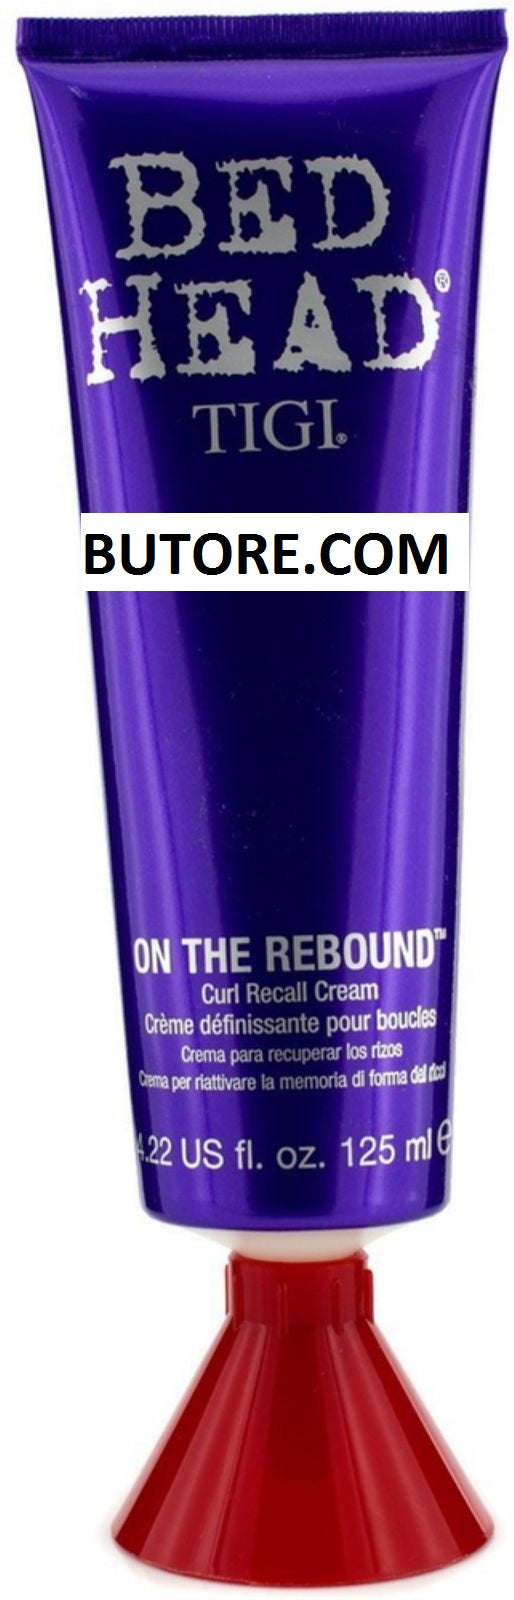 On The Rebound Curl Recall Cream 4.22 oz (Pack of 6)